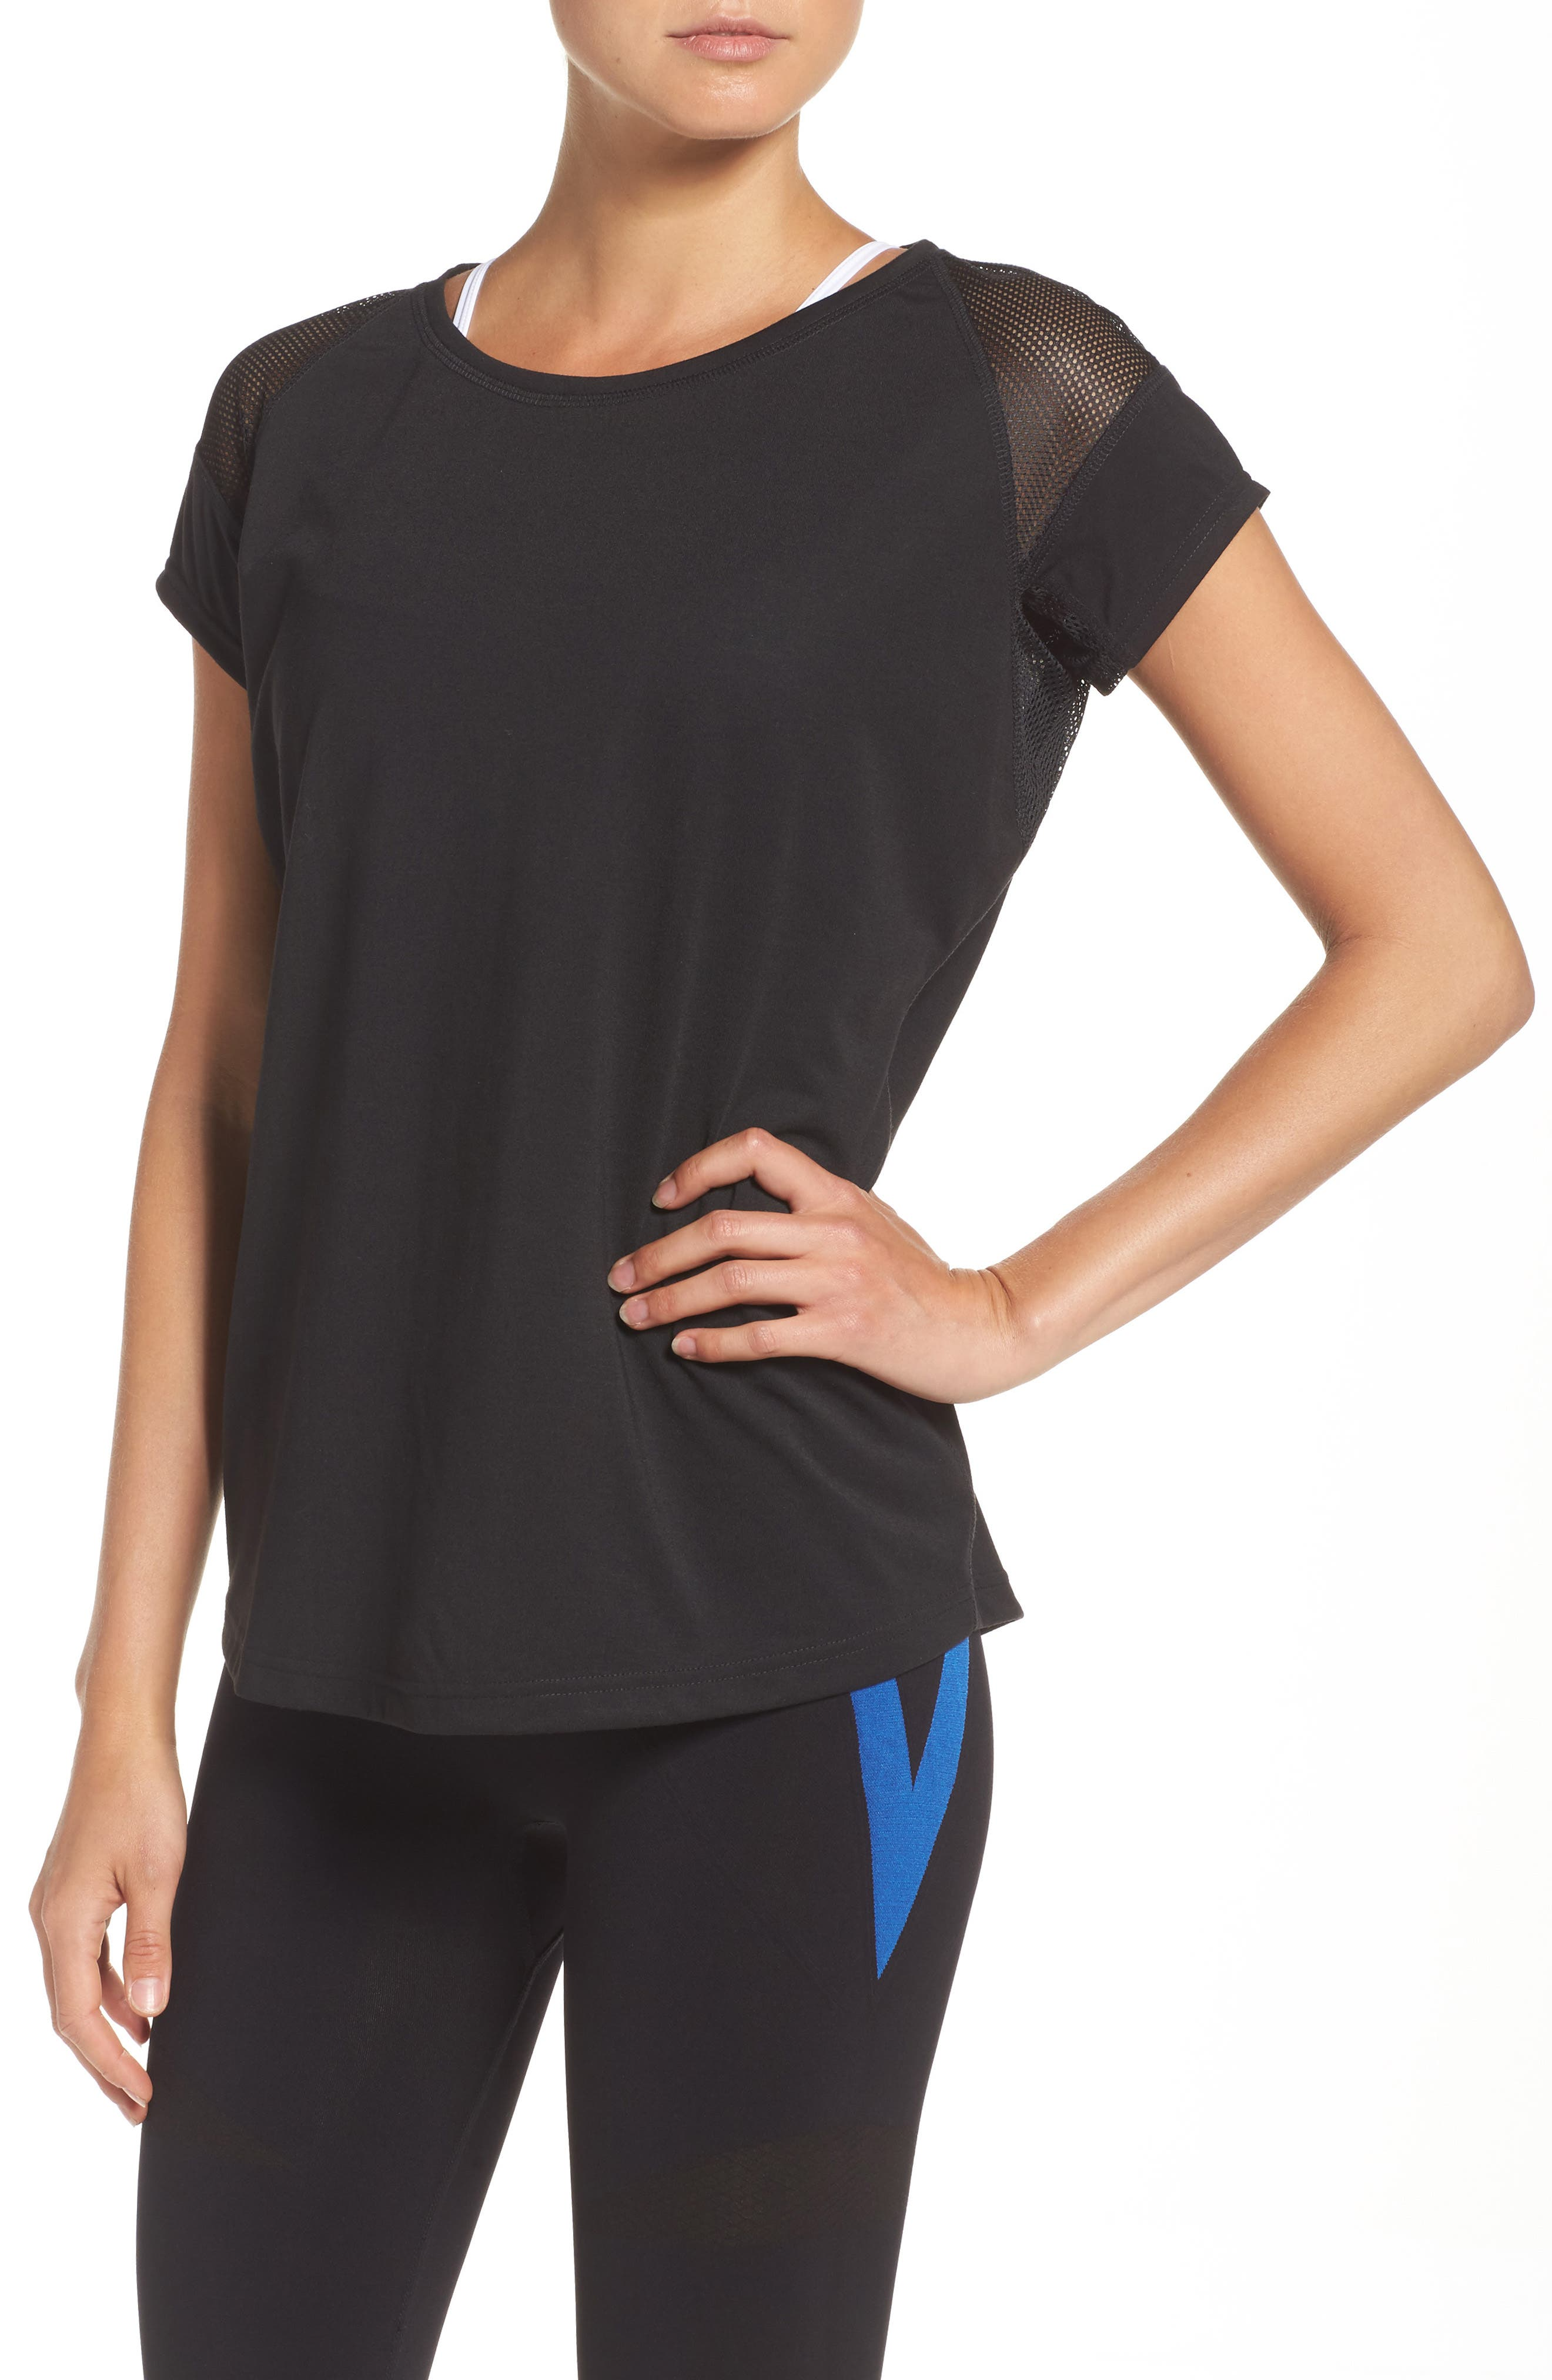 BoomBoom Athletica Sport Perfect Tee,                             Main thumbnail 1, color,                             001